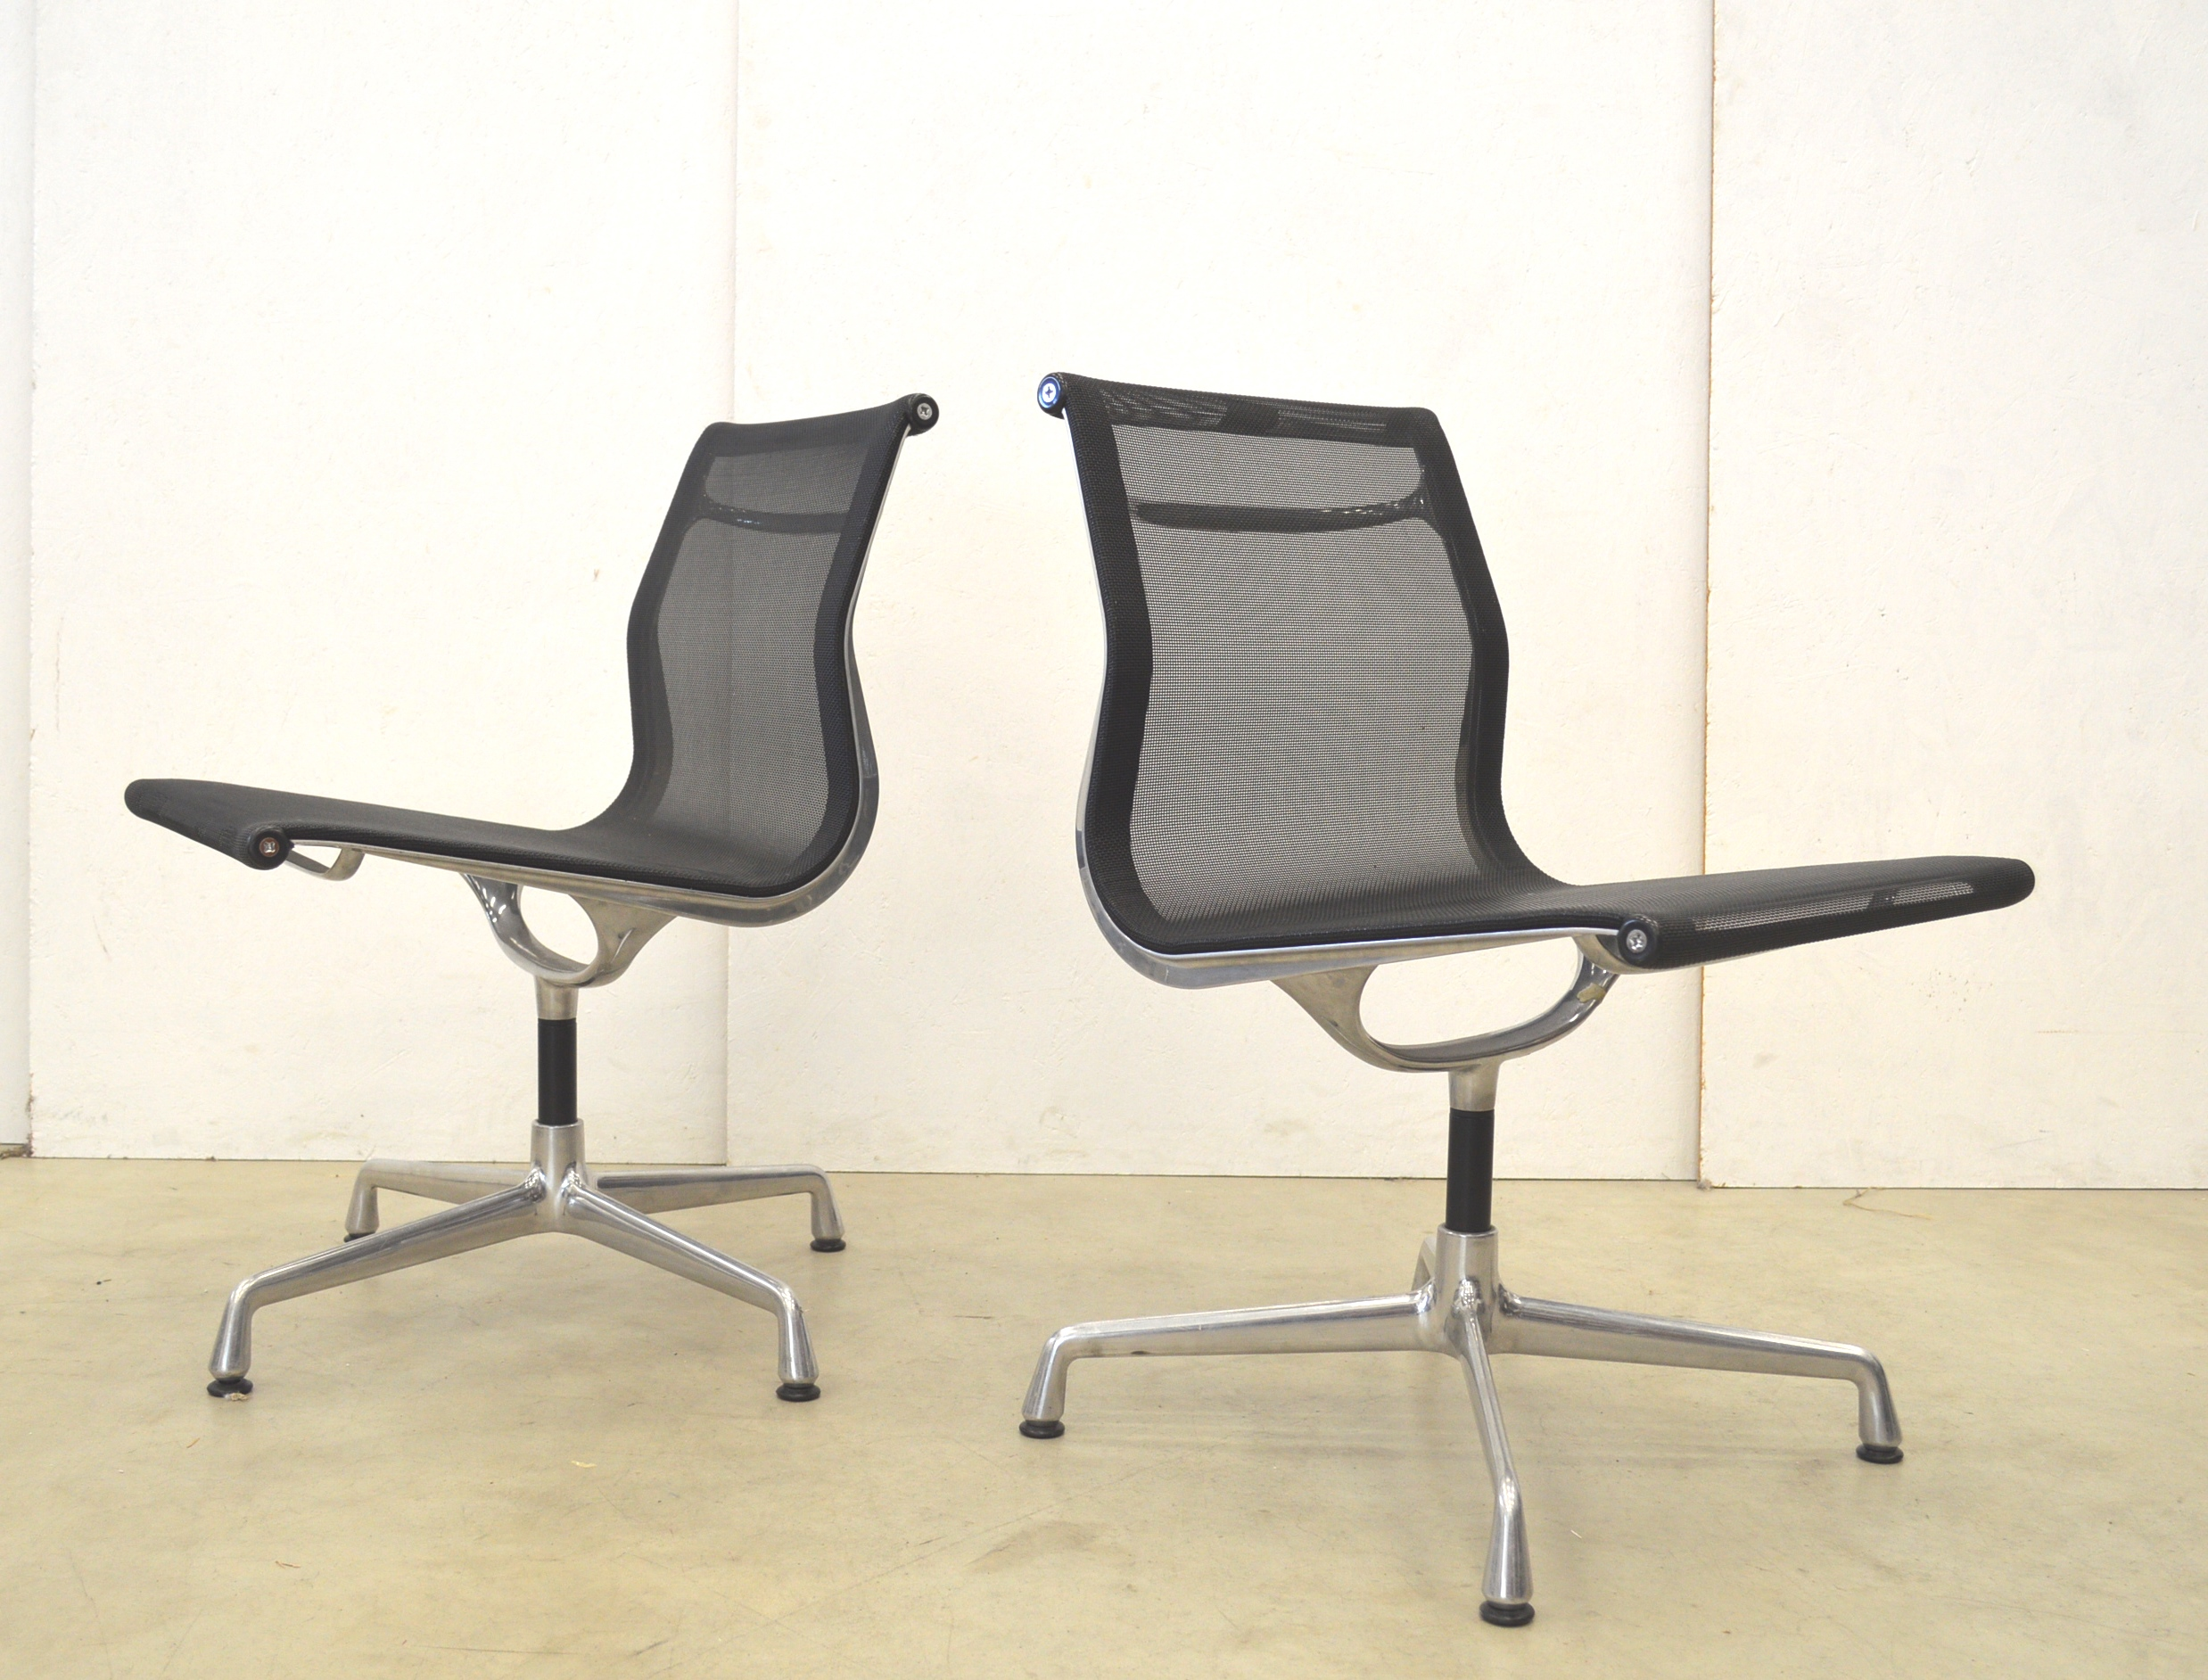 2x vitra ea106 alu chair netz netweave by charles eames. Black Bedroom Furniture Sets. Home Design Ideas